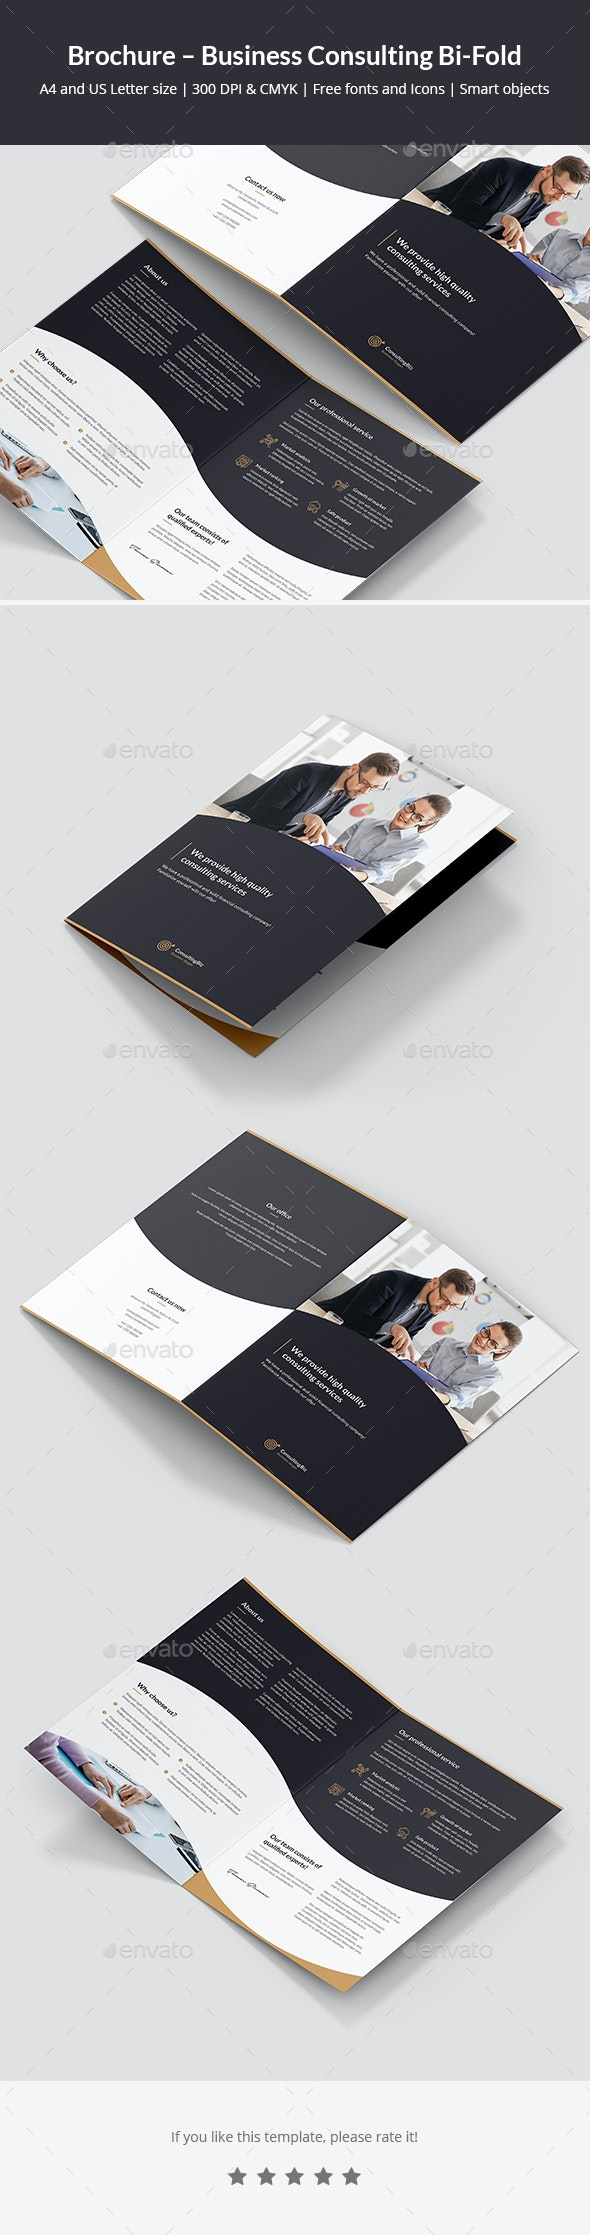 Brochure – Business Consulting Bi-Fold - Corporate Brochures